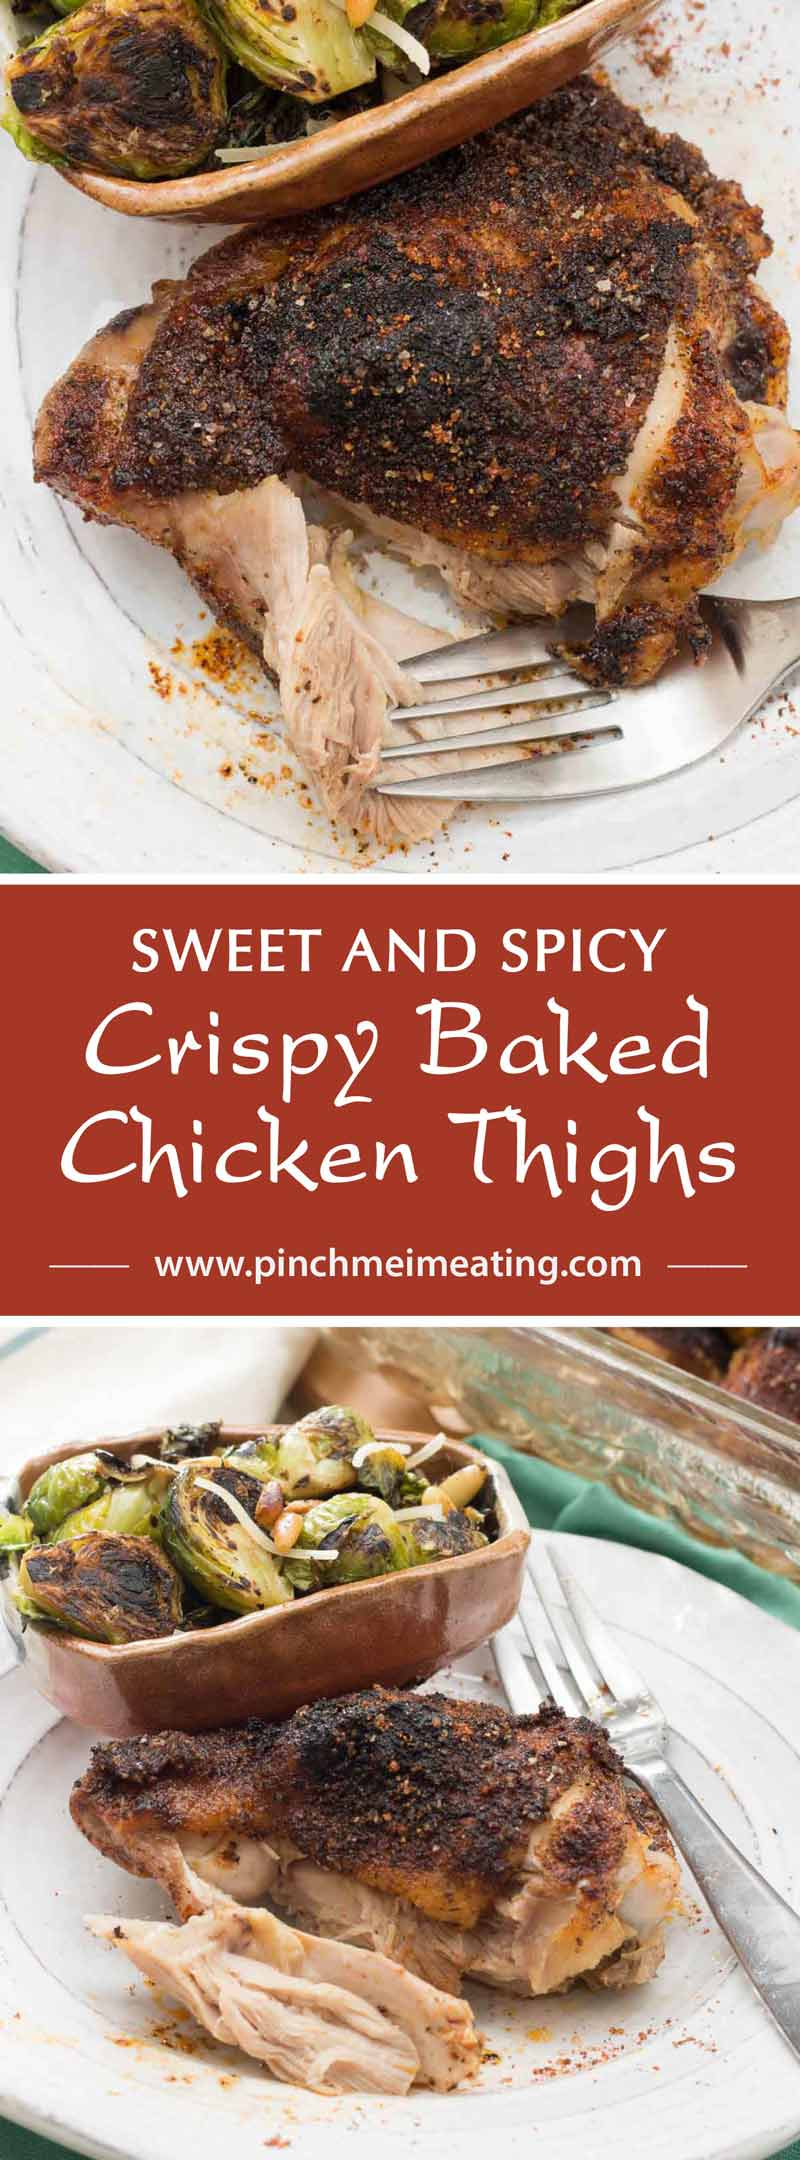 Sweet and Spicy Crispy Baked Chicken Thighs | Pinch me, I ...